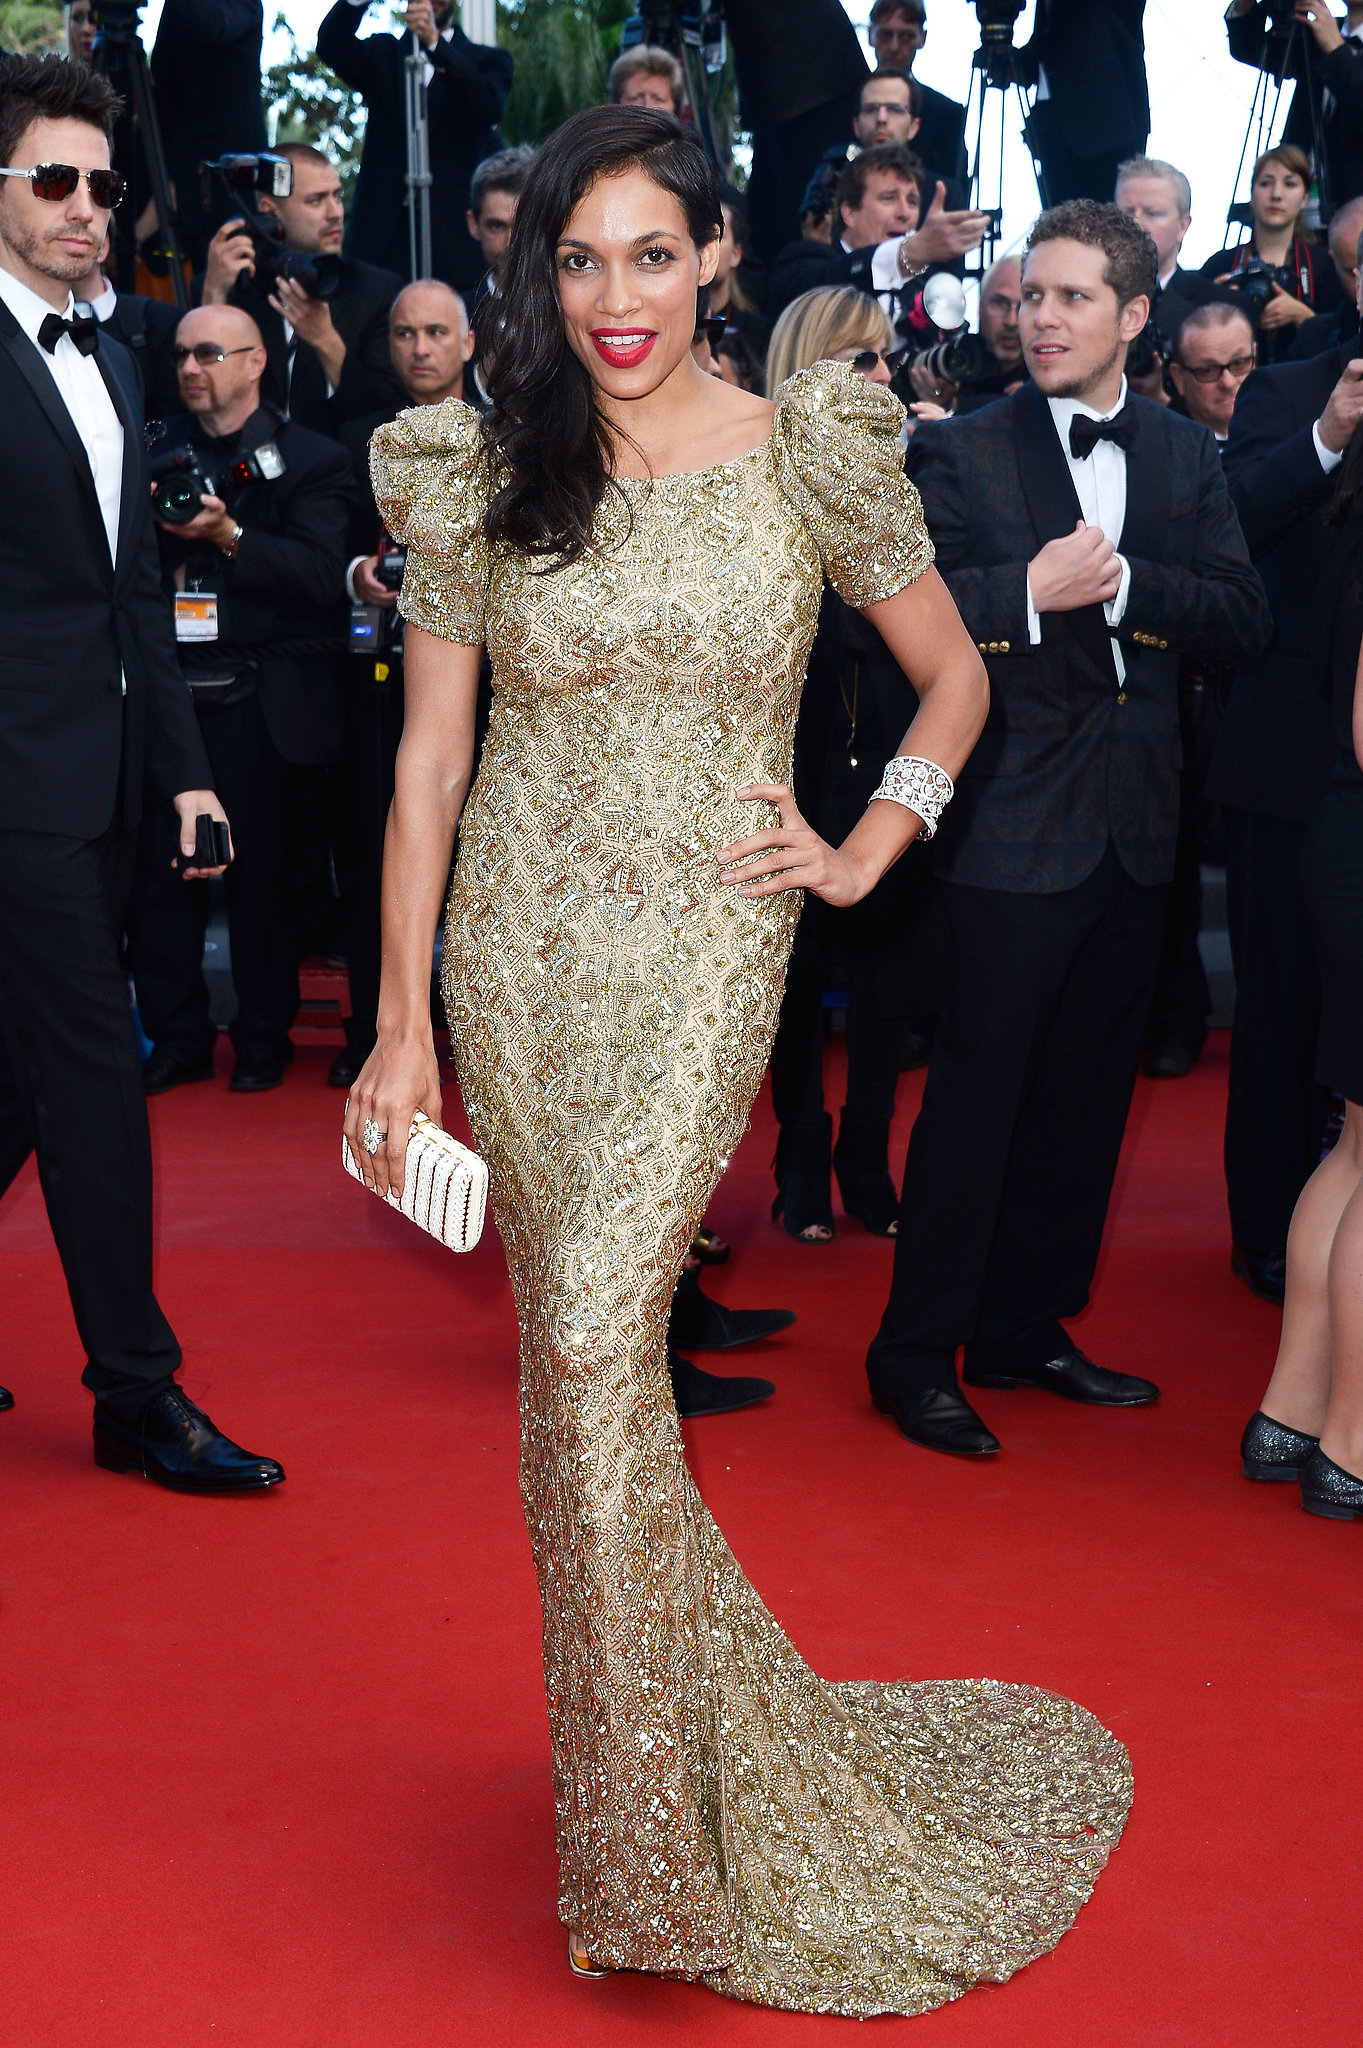 Rosario Dawson lit up the Cleopatra red carpet in a gilded Marchesa gown and bright red lip.